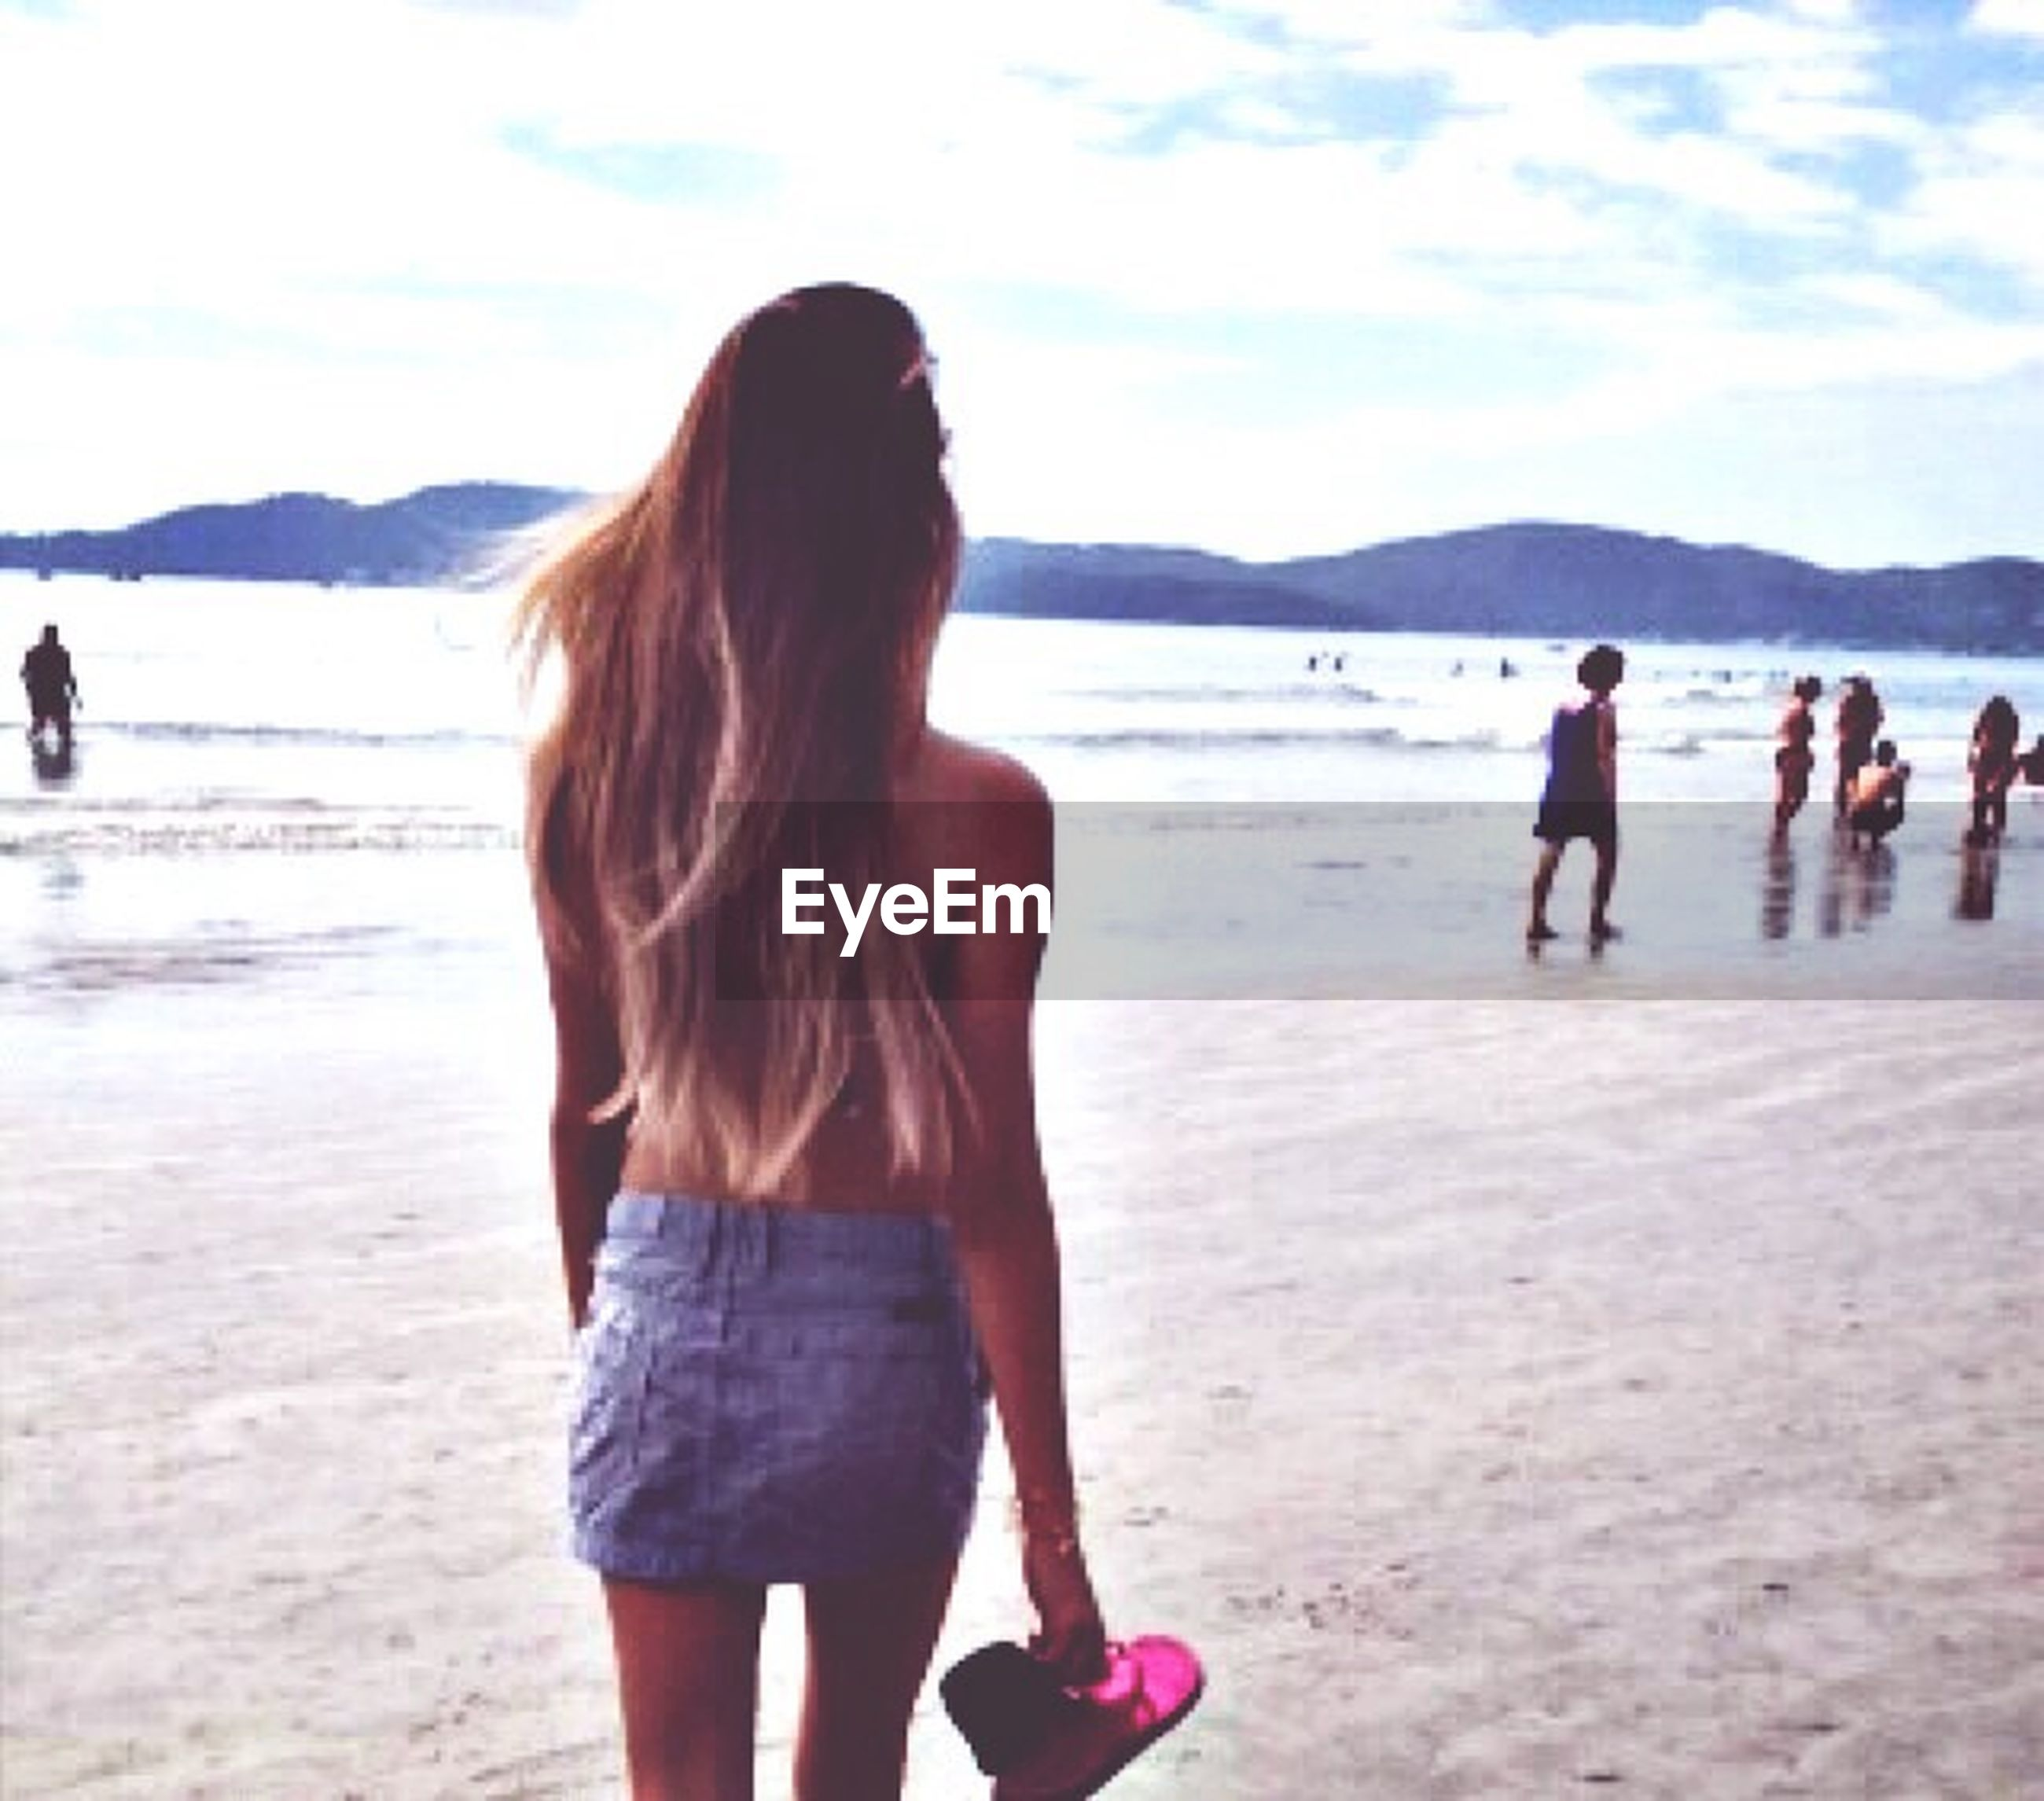 beach, sea, lifestyles, water, mountain, leisure activity, sky, person, vacations, sand, shore, scenics, standing, tourist, young women, beauty in nature, rear view, long hair